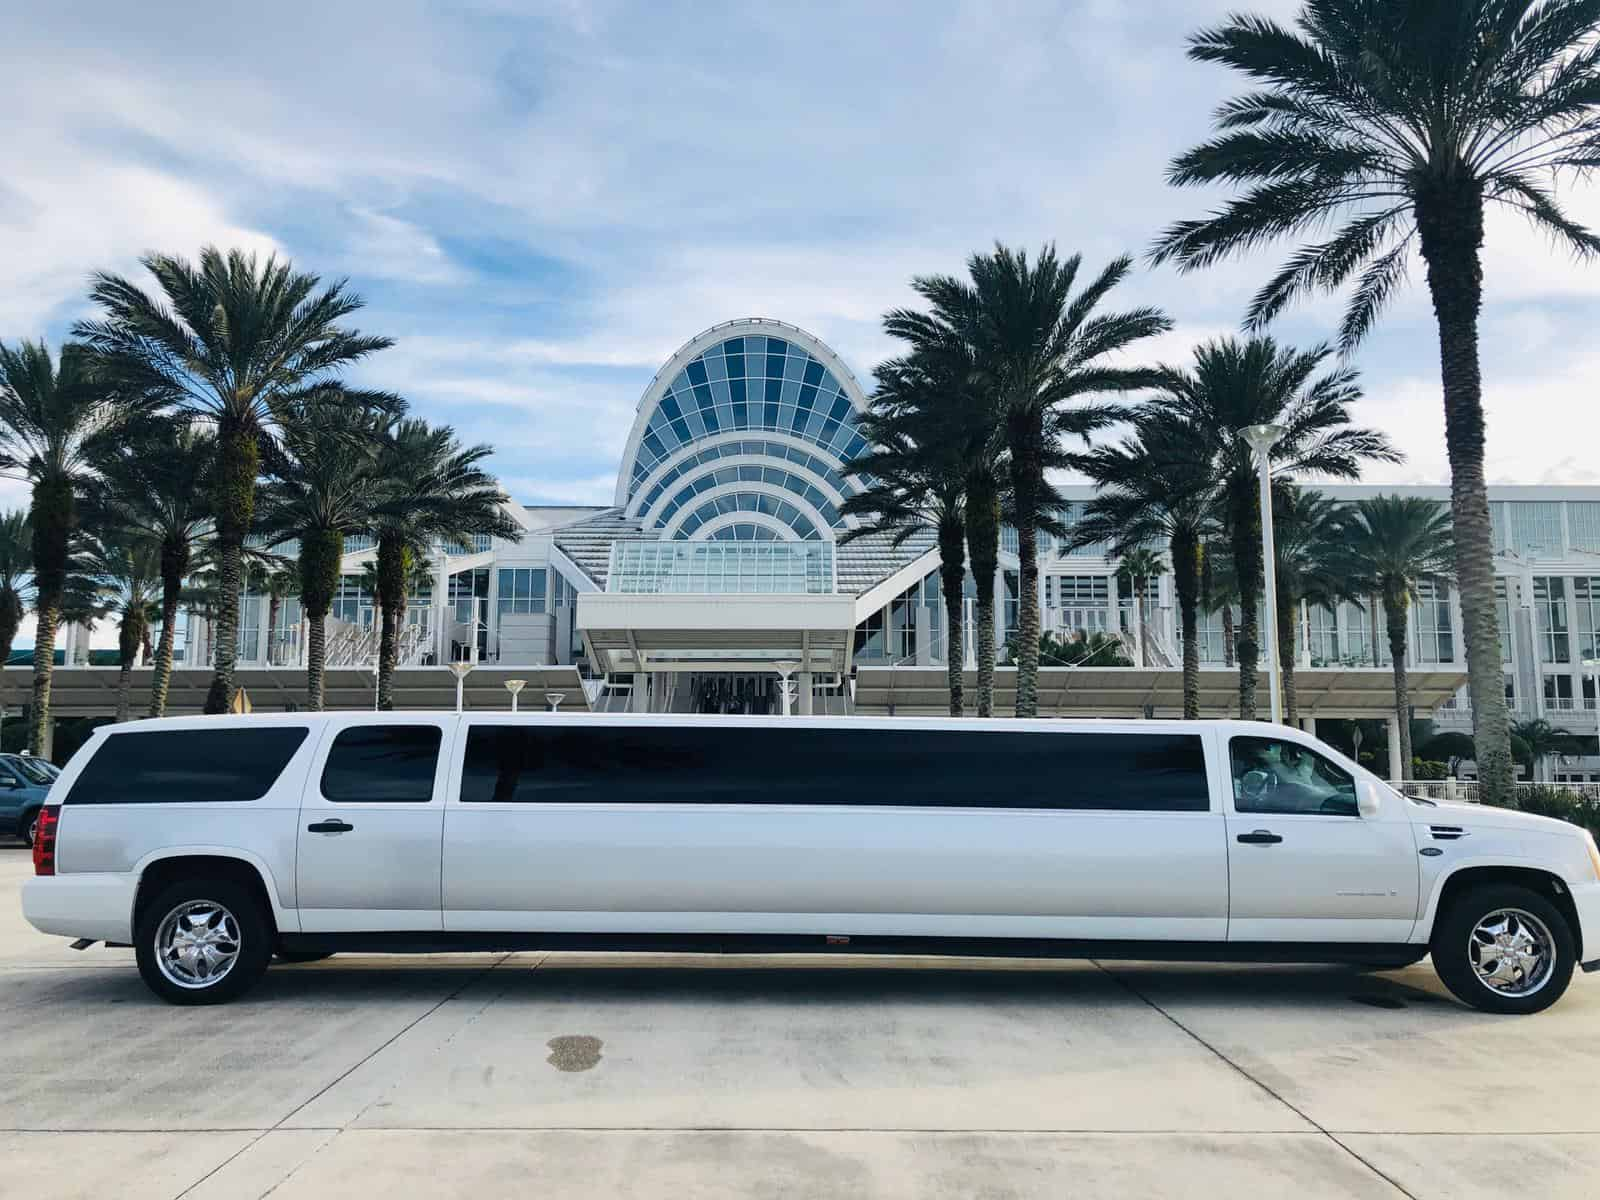 Escalade Limousine outside the Orange County Convention Center